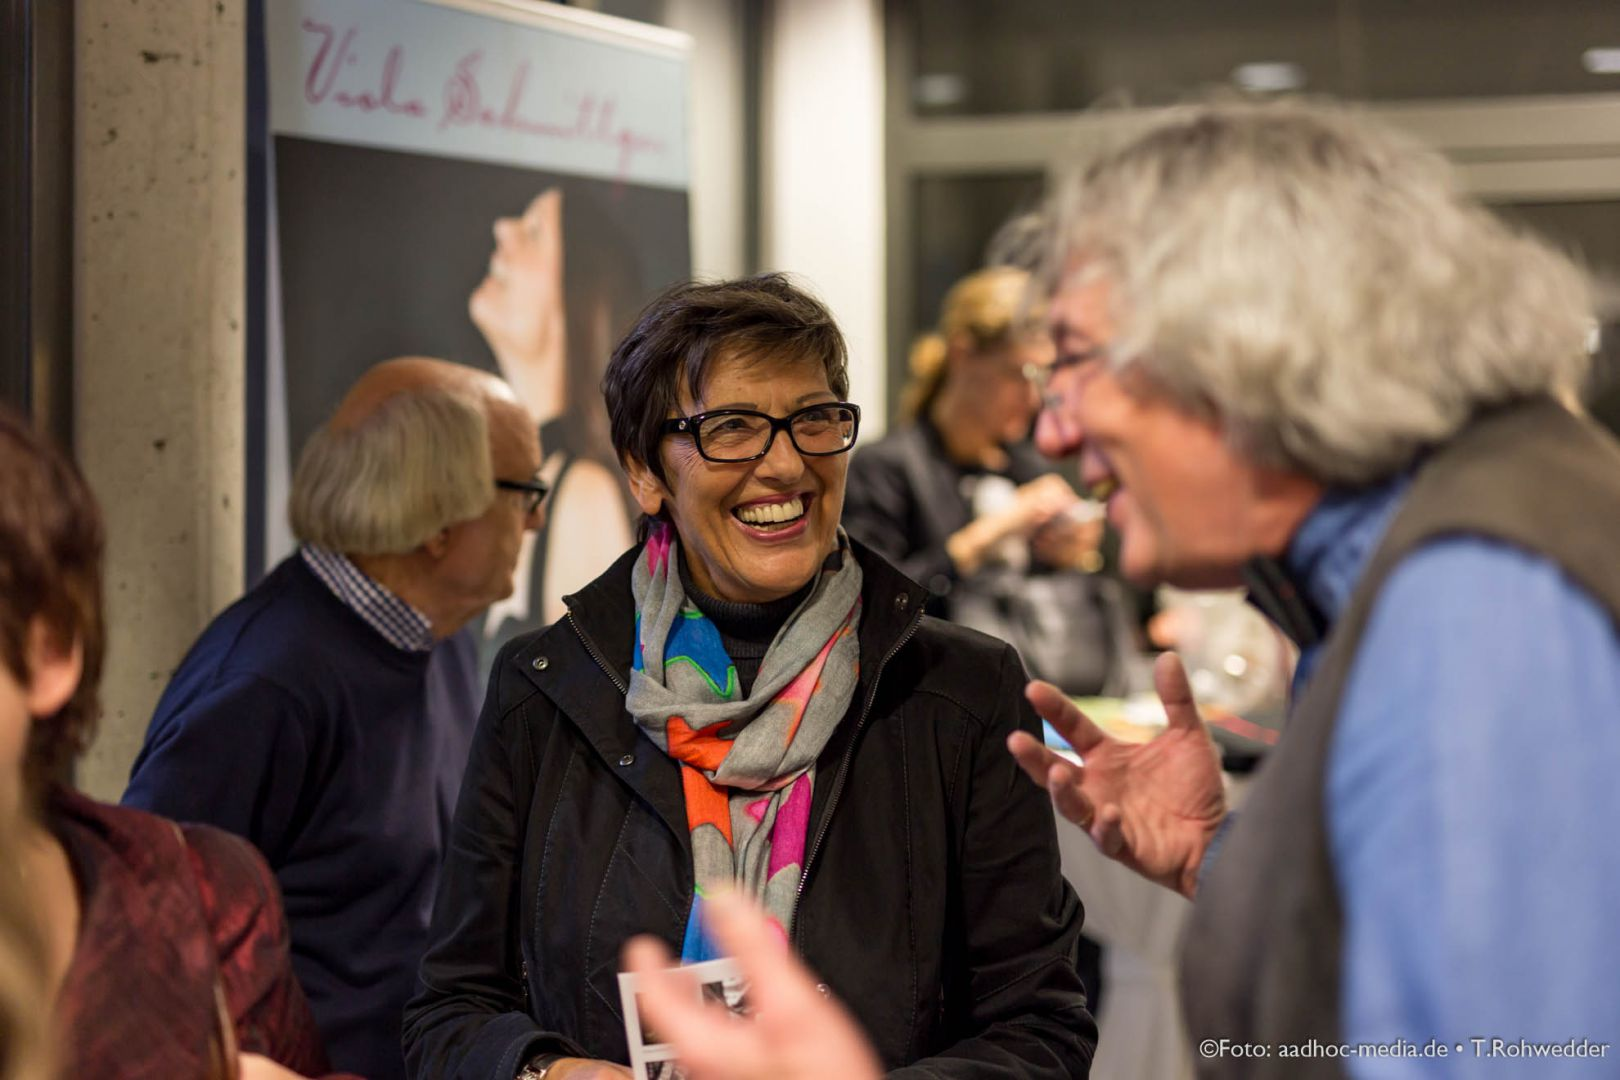 JuliBo_Vernissage_20151016Lubinus_6D_101_6407